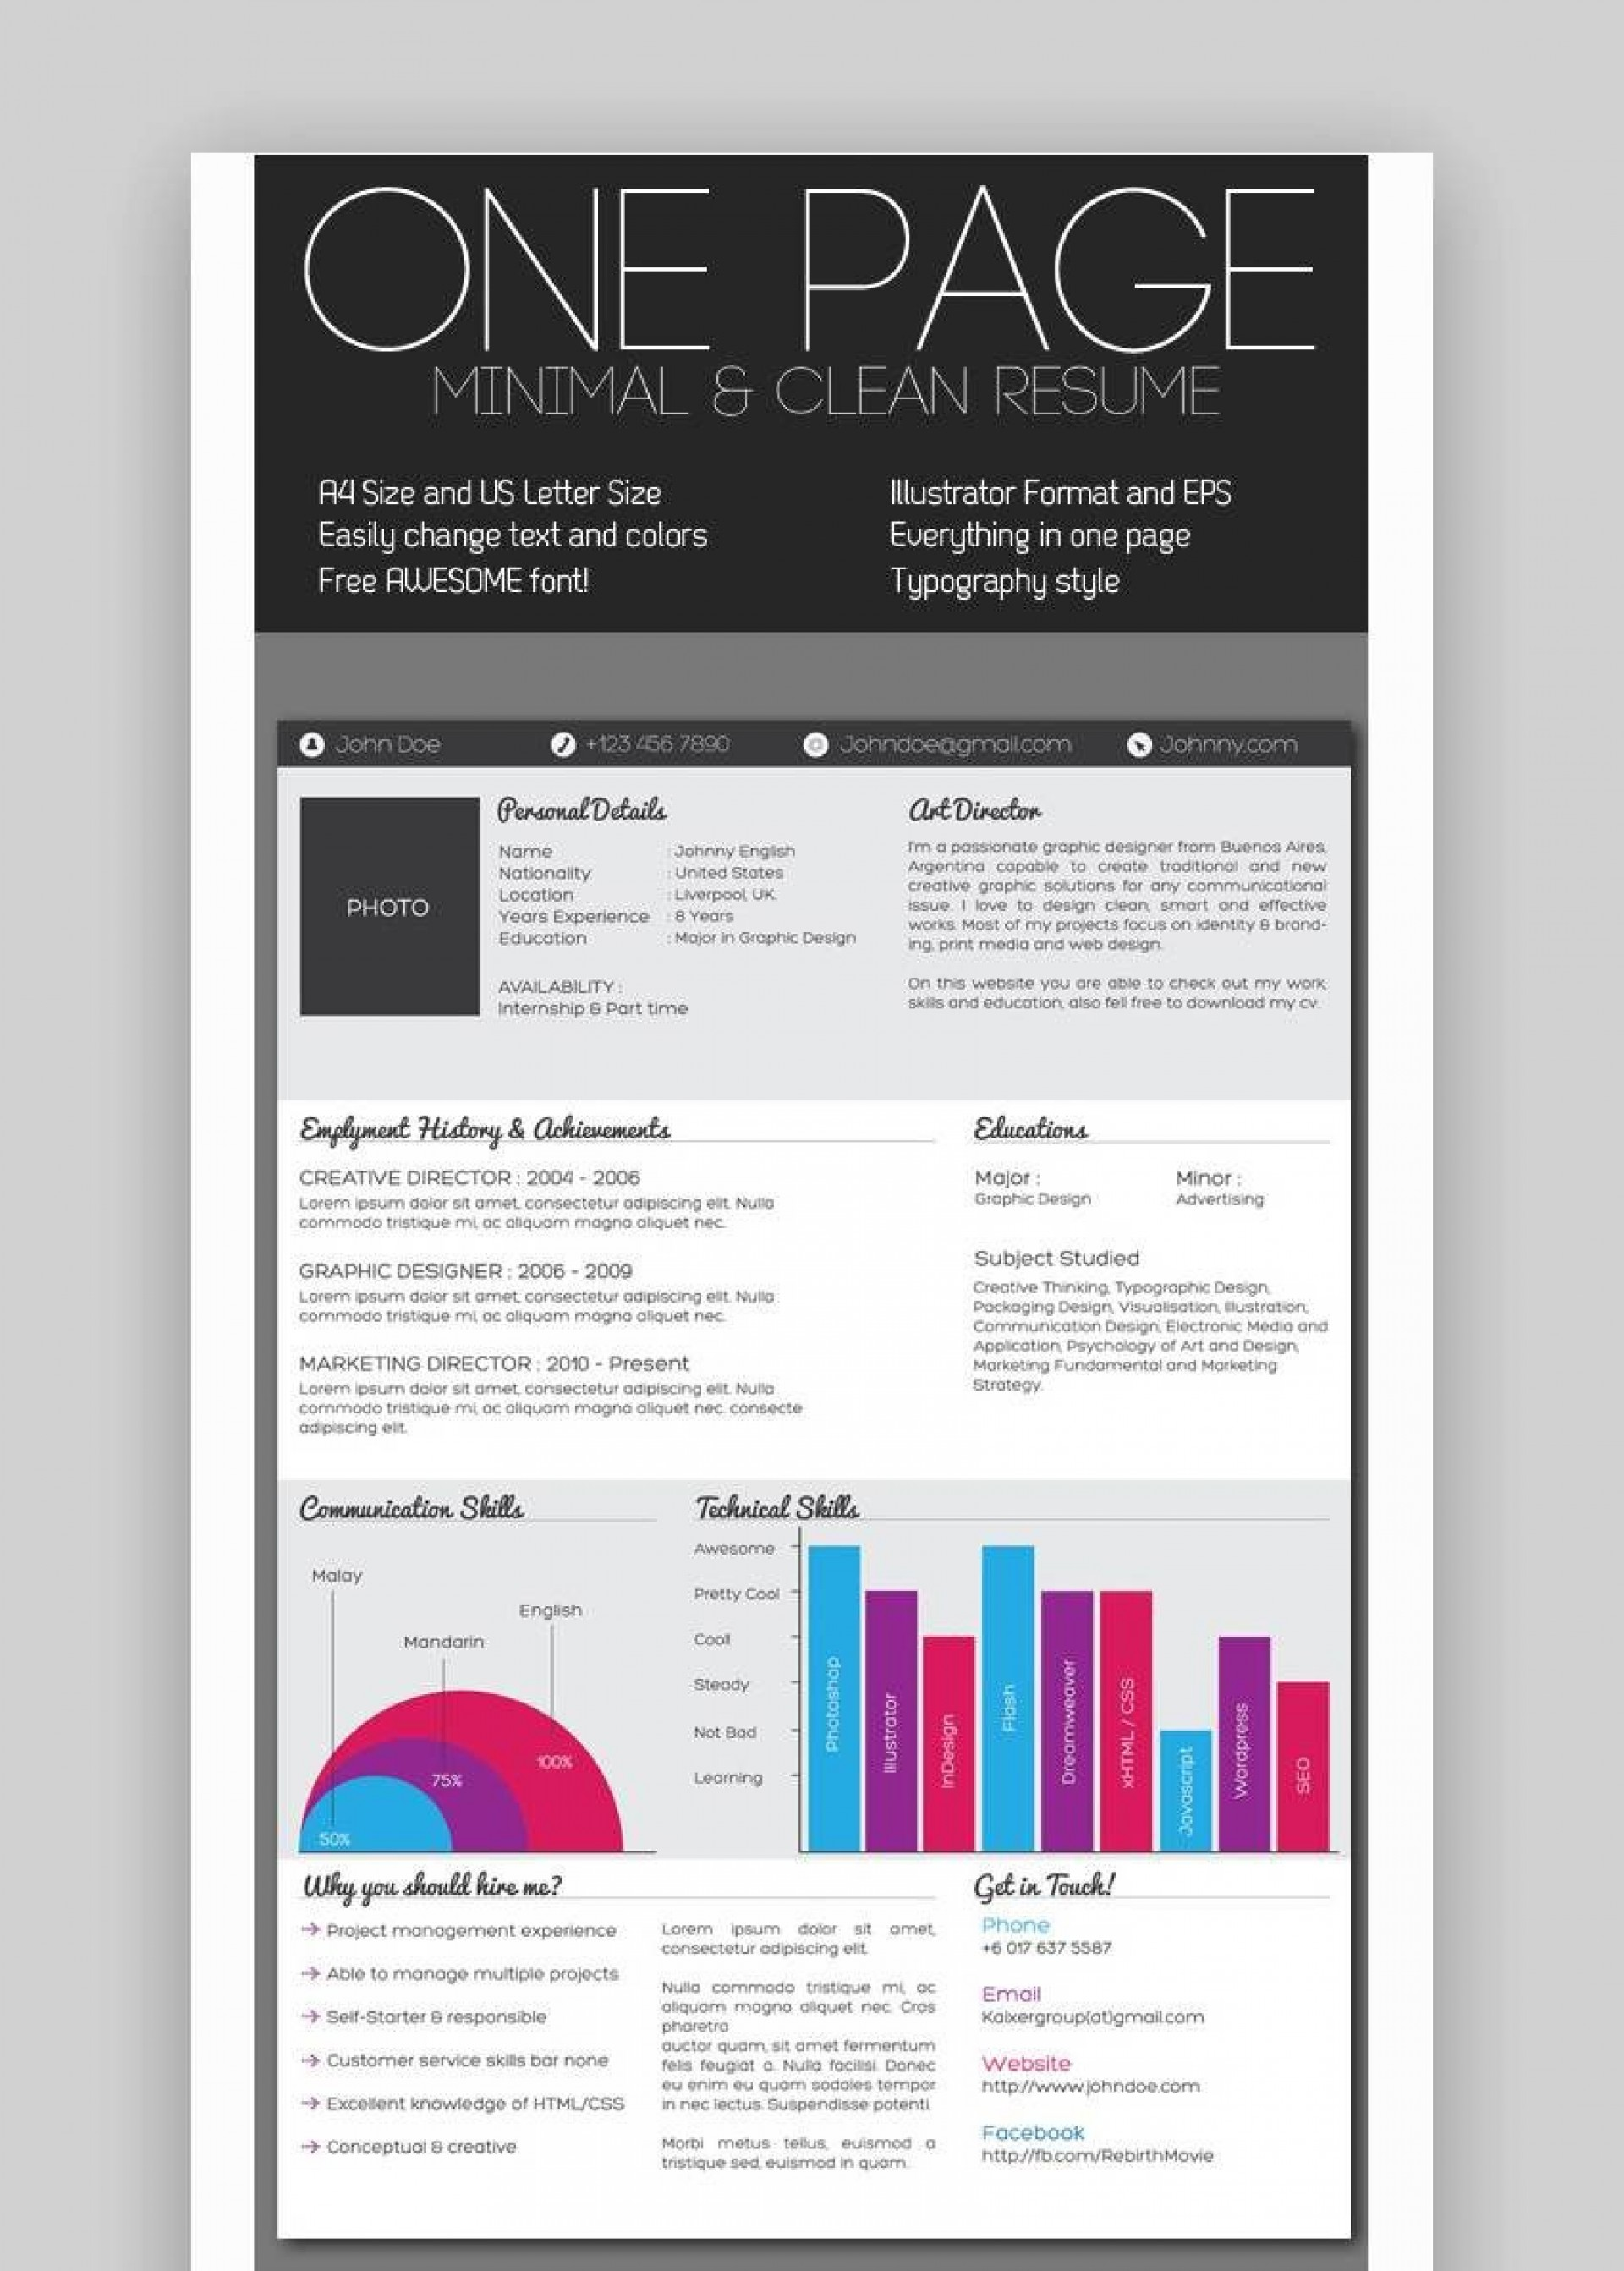 004 Astounding One Page Resume Template Sample  Templates Microsoft Word Free1920